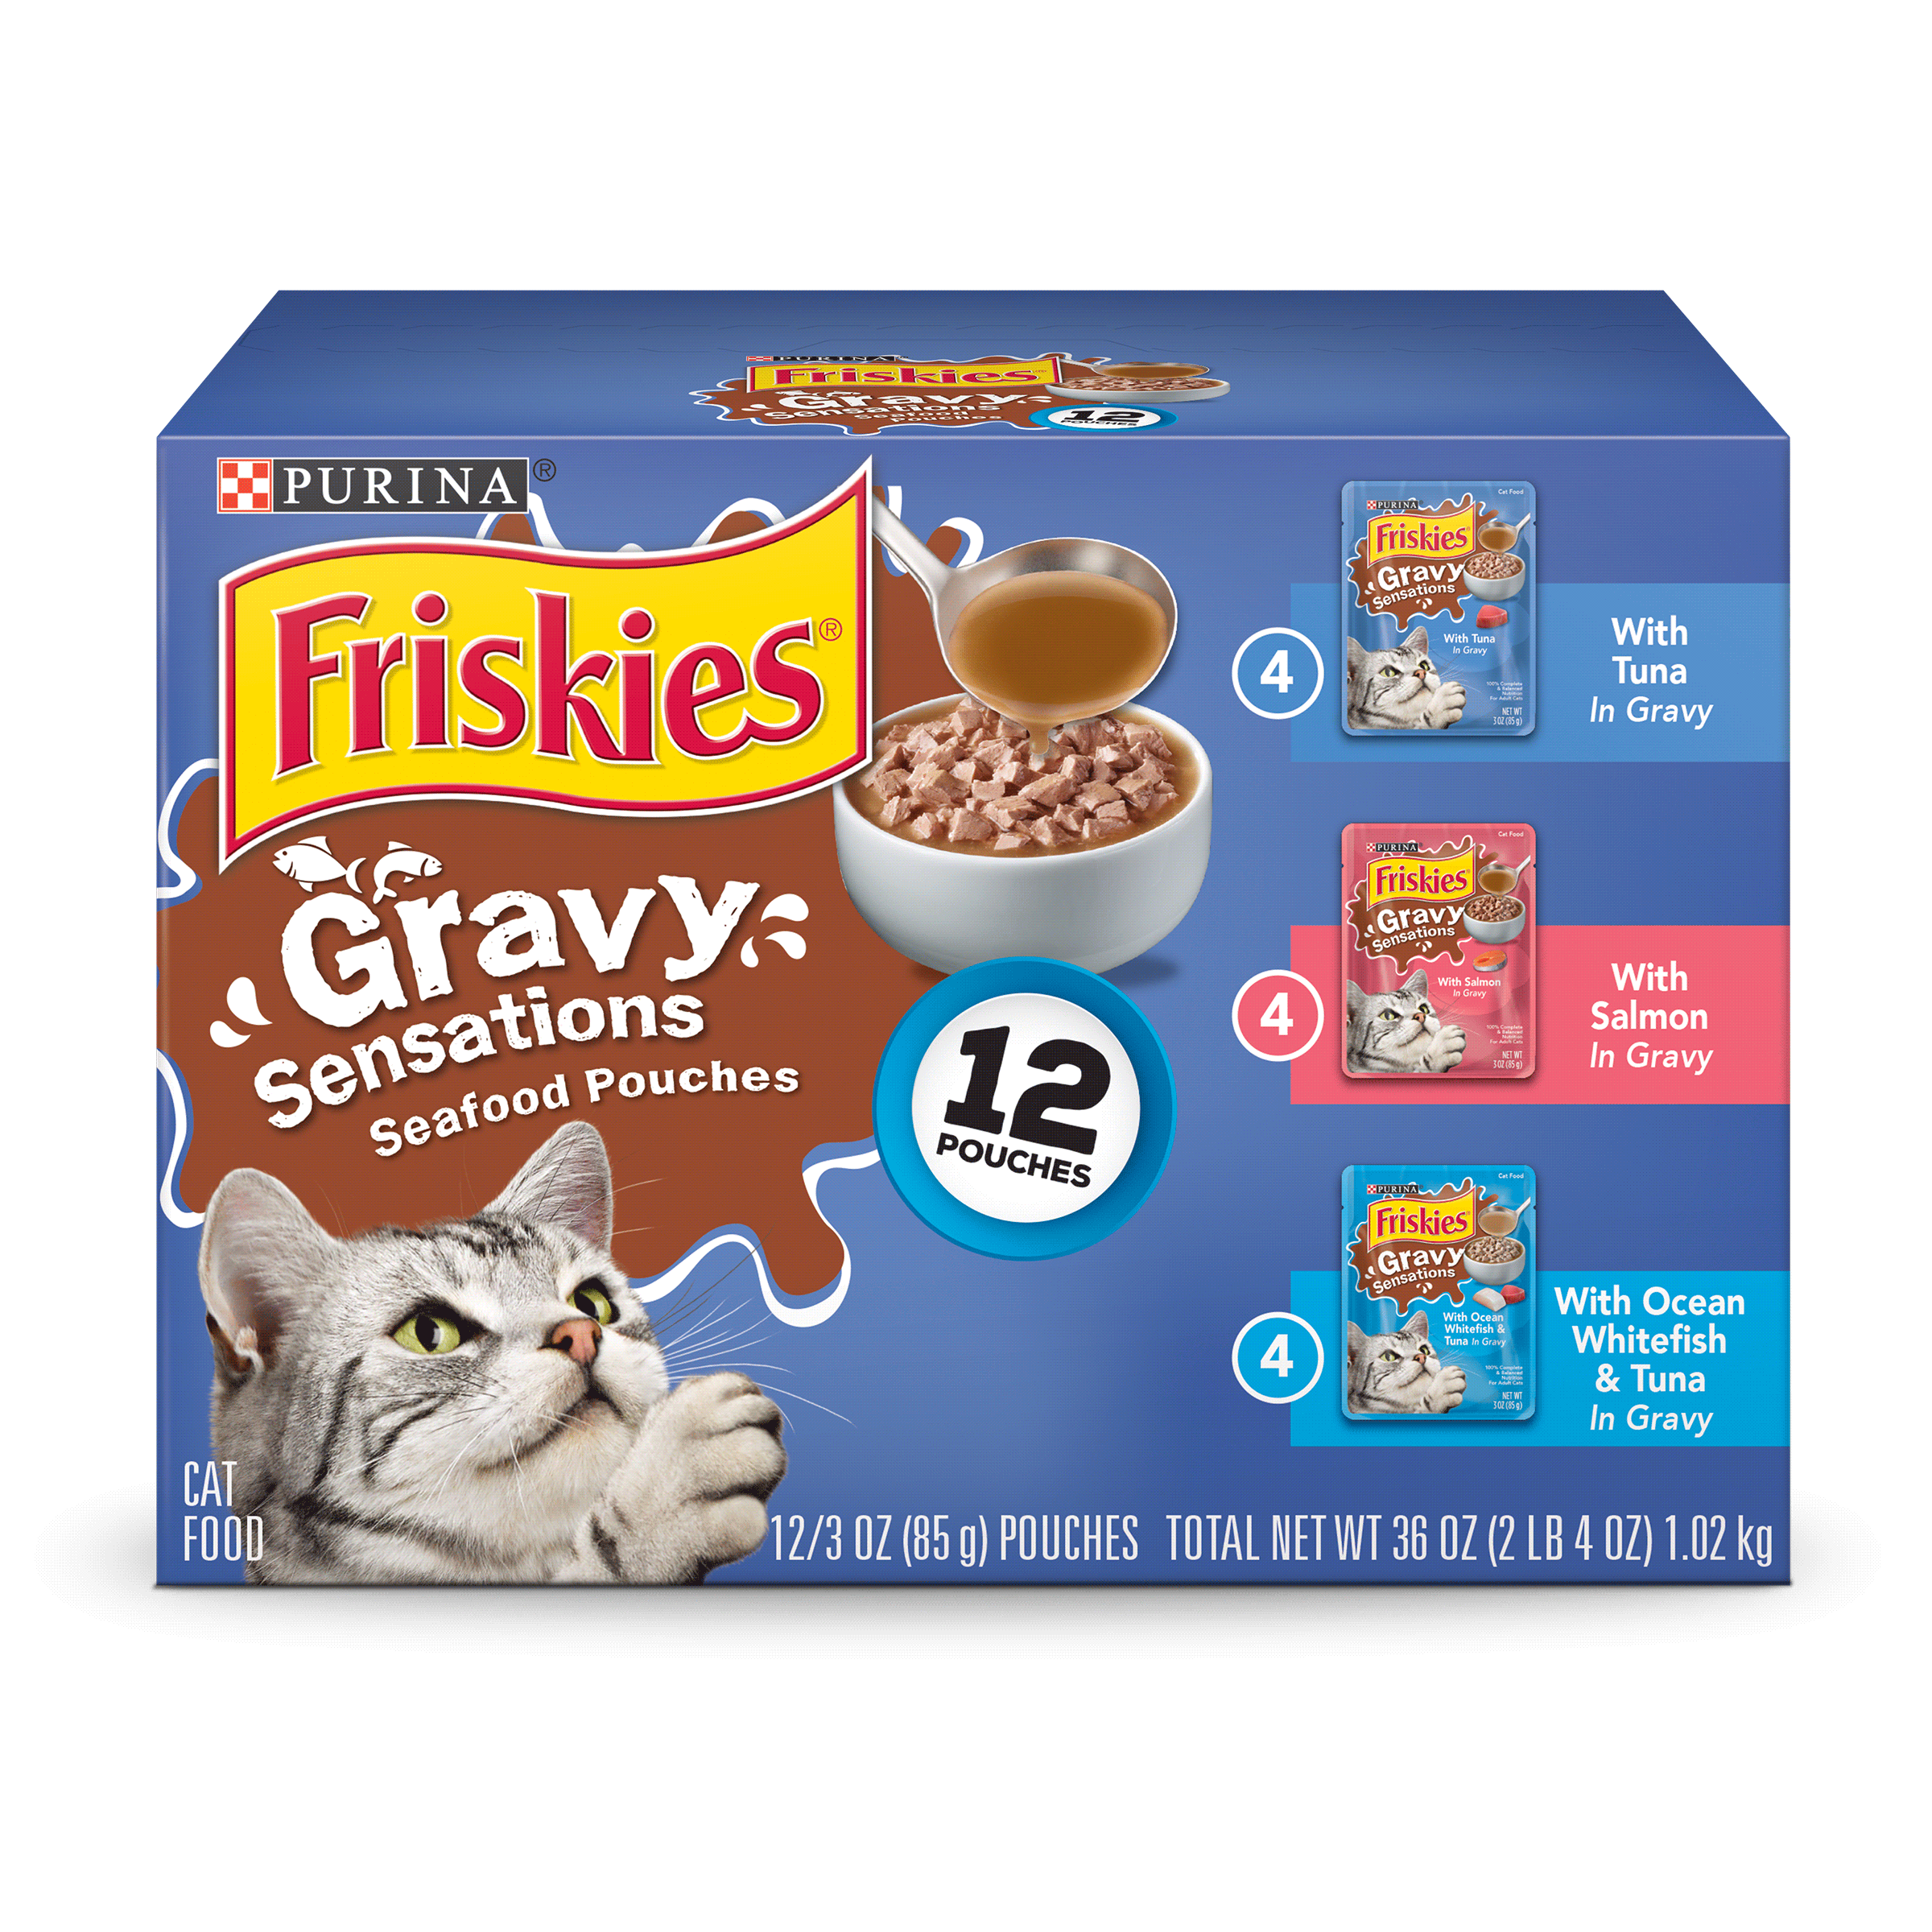 Purina Friskies Gravy Sensations Seafood Favorites Wet Cat Food Variety Pack - (12) 3 oz. Pouches